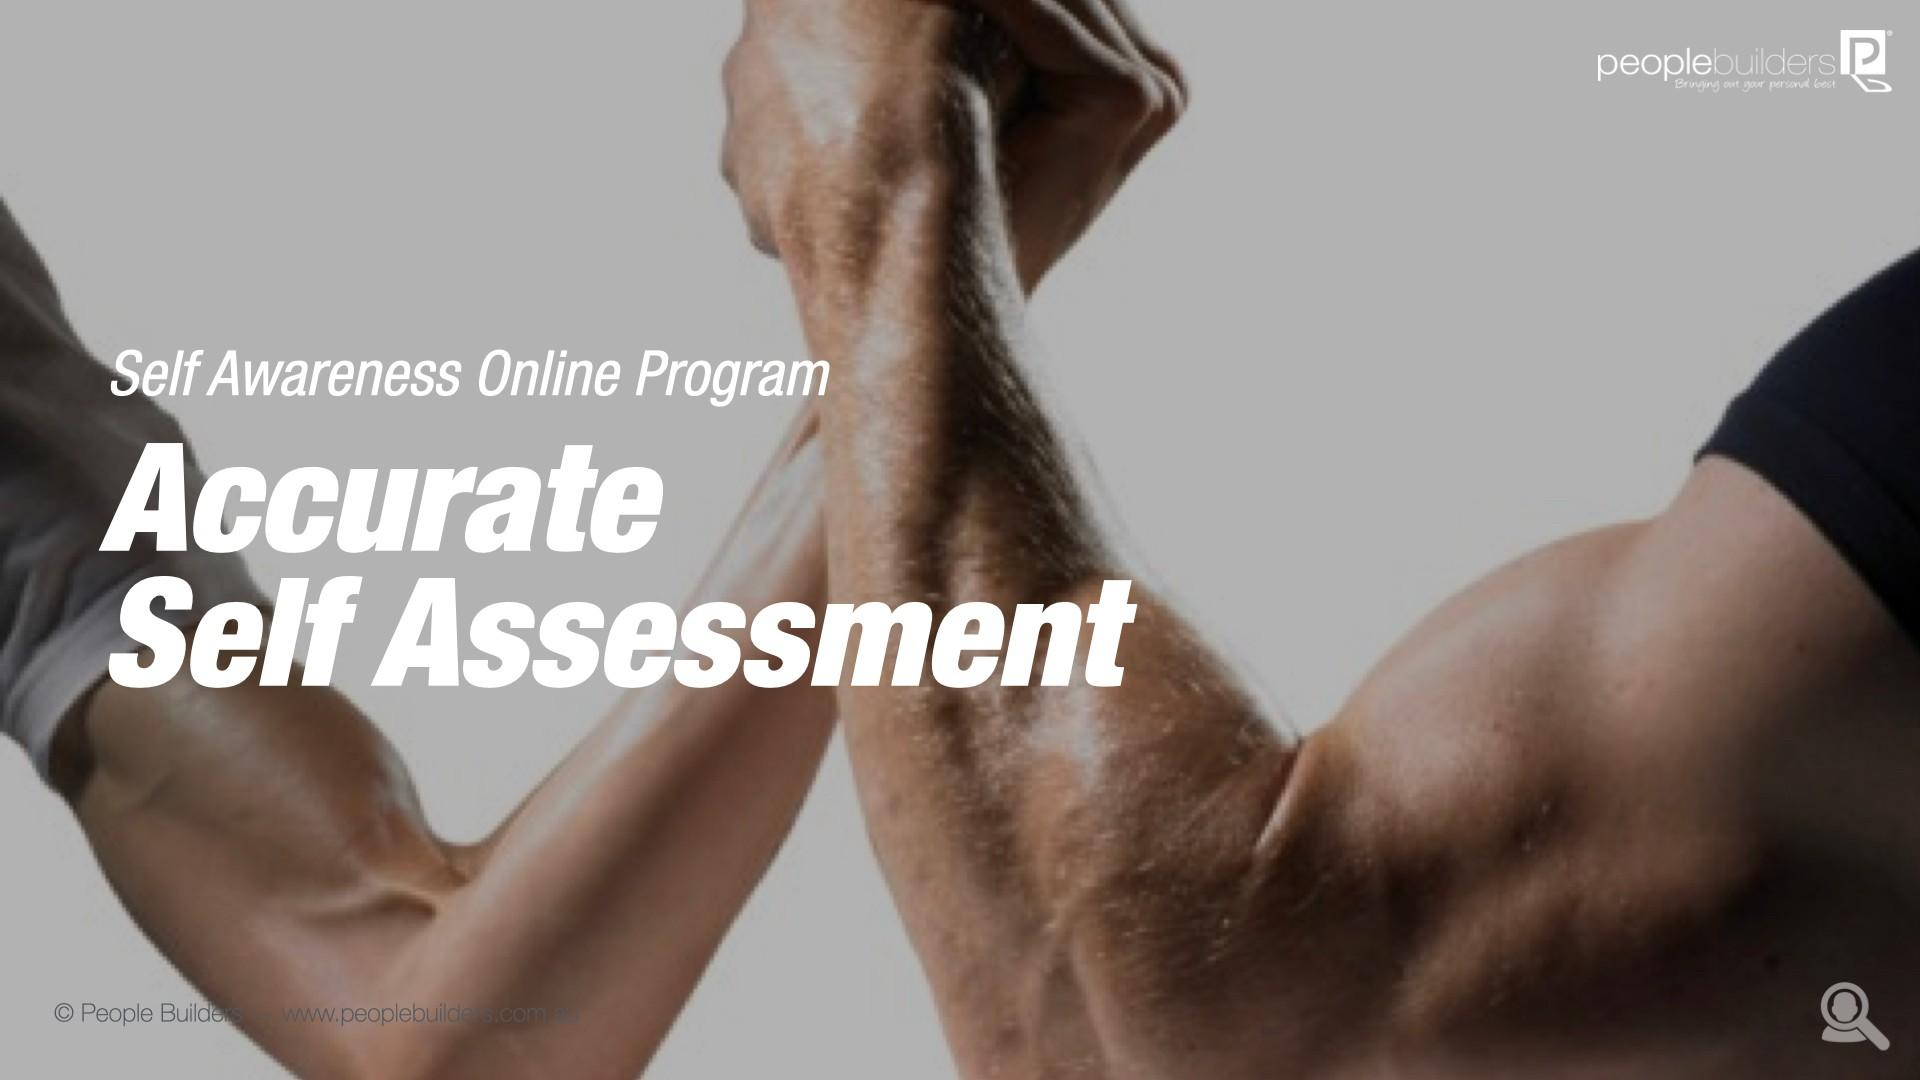 Accurate Self Assessment Training poster showing muscular and thin guy doing arm wrestling.